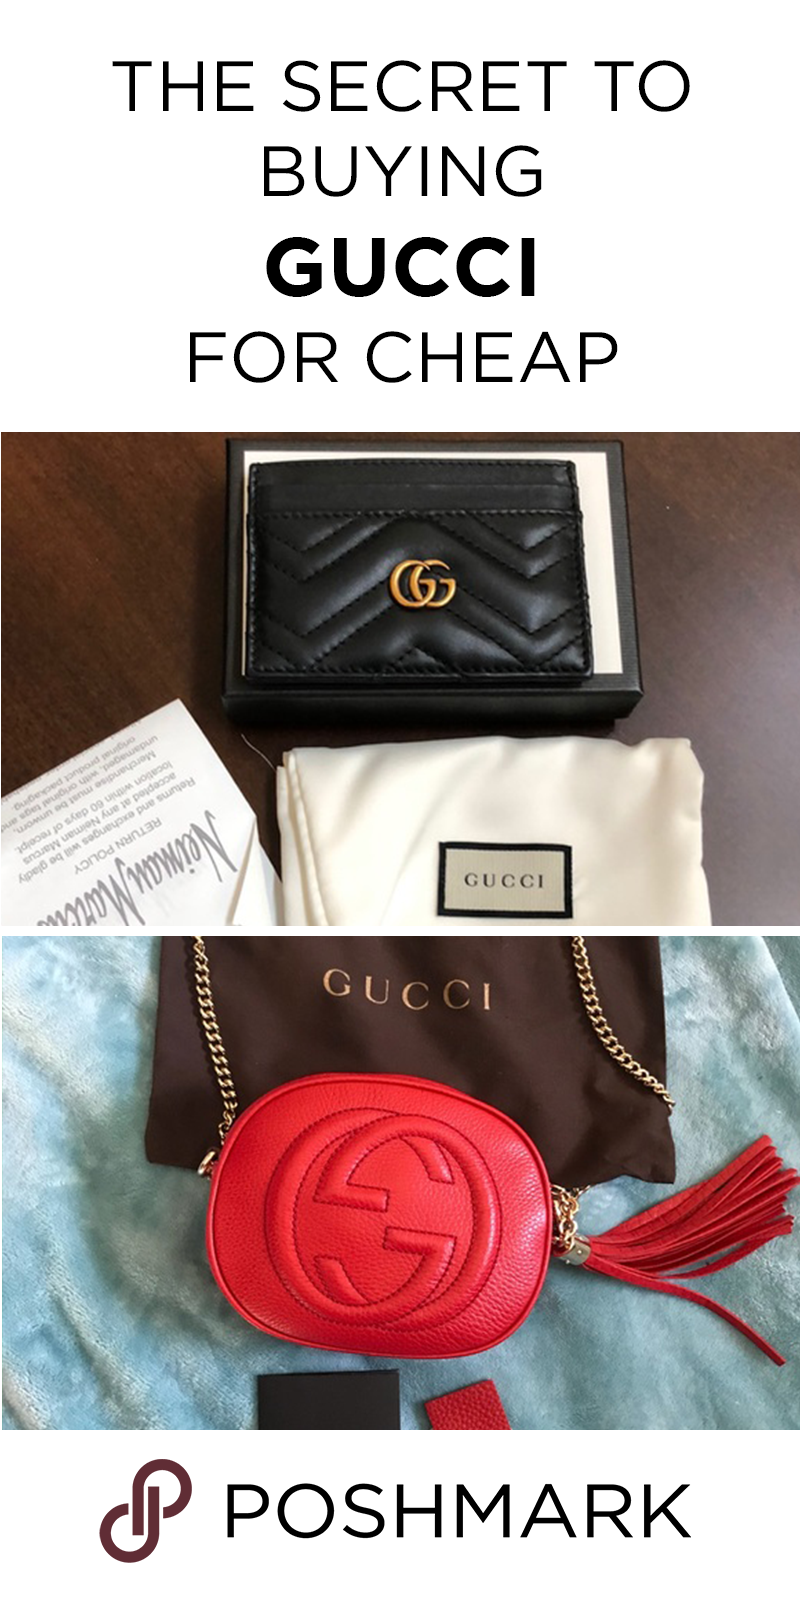 20bb1121ebccc Find Gucci at cheap prices when you shop on Poshmark. Download the app for  the best deals on luxury designer handbags!